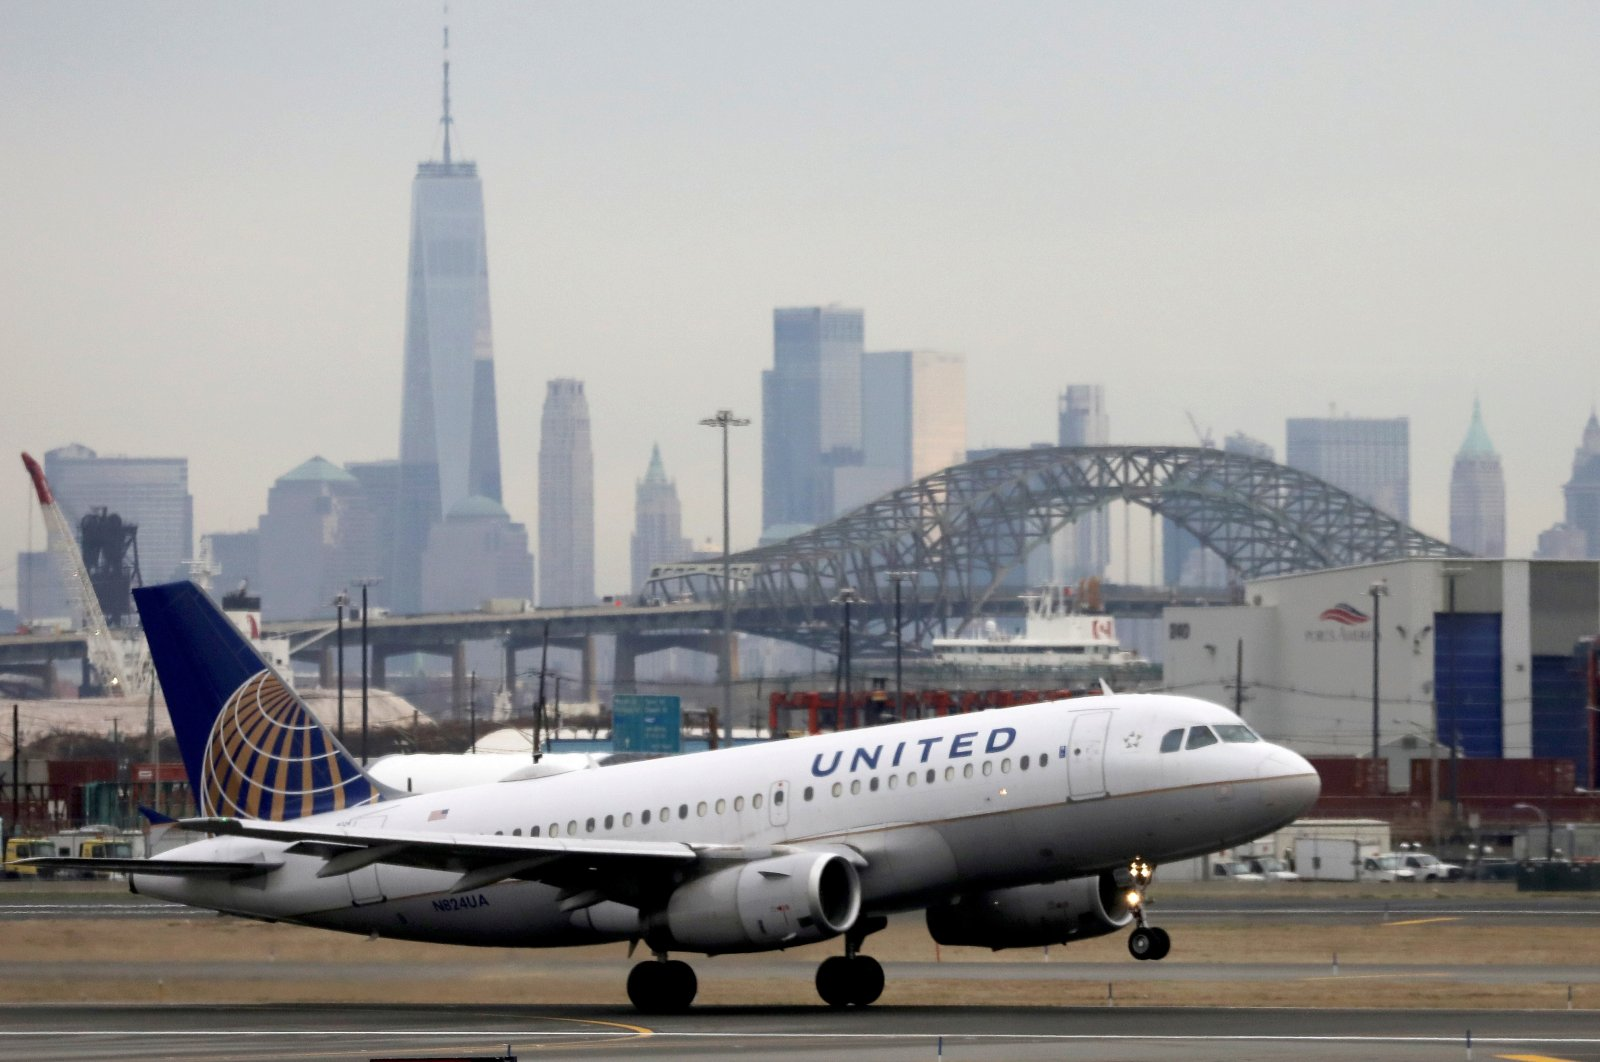 A United Airlines passenger jet takes off with New York City as a backdrop, at Newark Liberty International Airport, New Jersey, U.S. Dec. 6, 2019. (Reuters Photo)